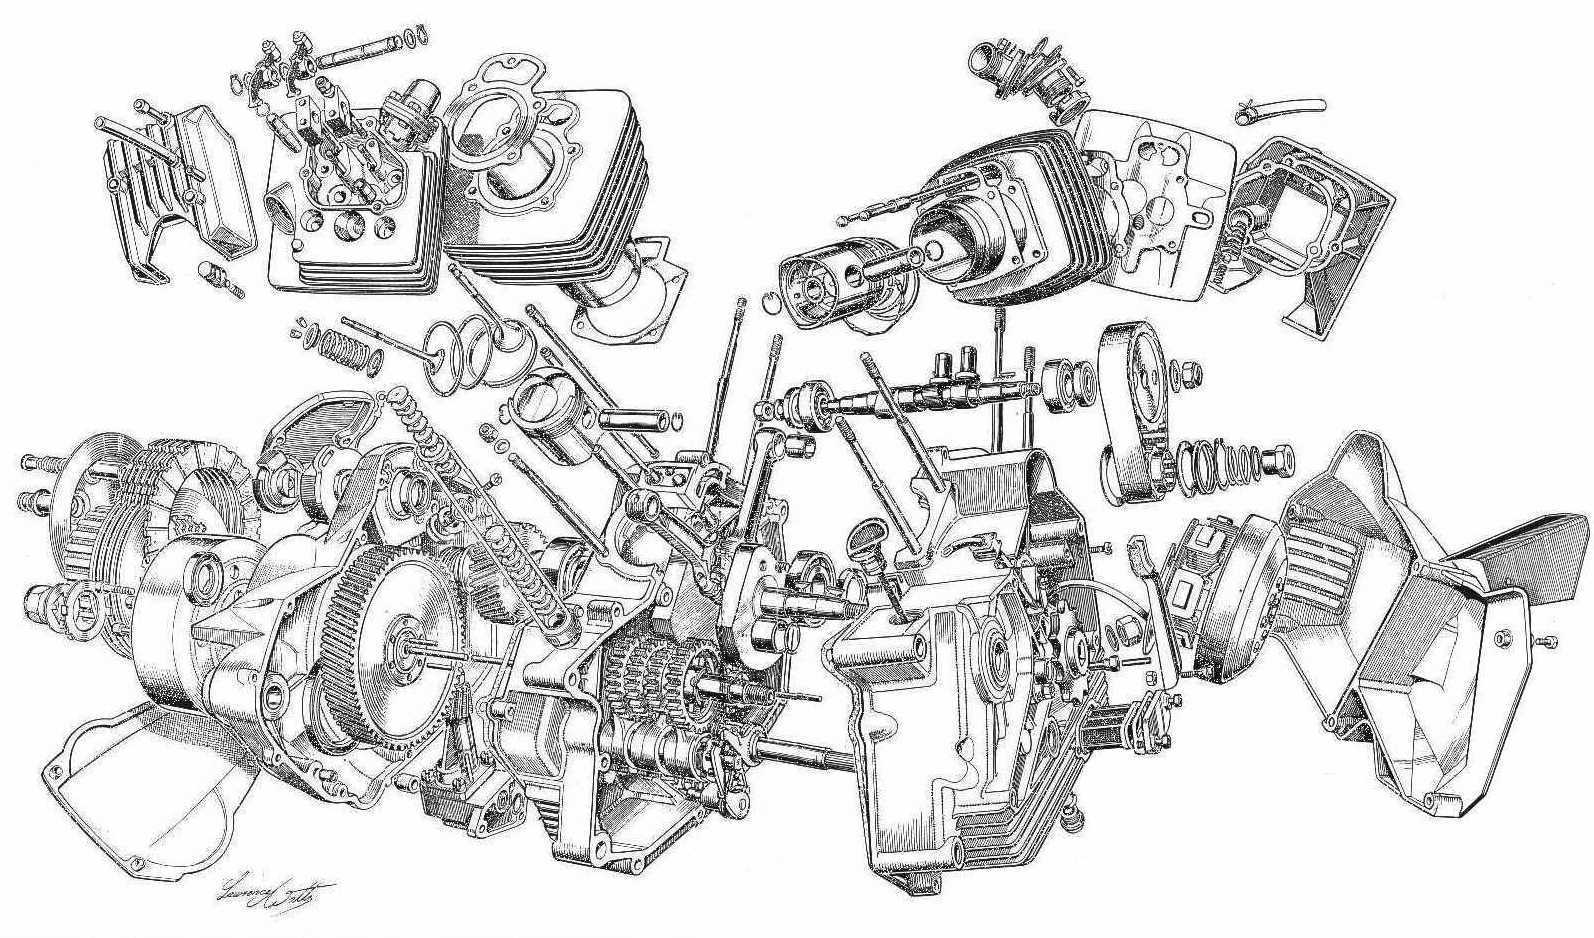 115740 Wiring Diagrams Indian Two Wheelers furthermore 2012 12 01 archive furthermore Yanmar Yse 8 12 Repair Service Workshop Manuals also Lambretta Wiring Diagram further Showthread. on vespa wiring diagram